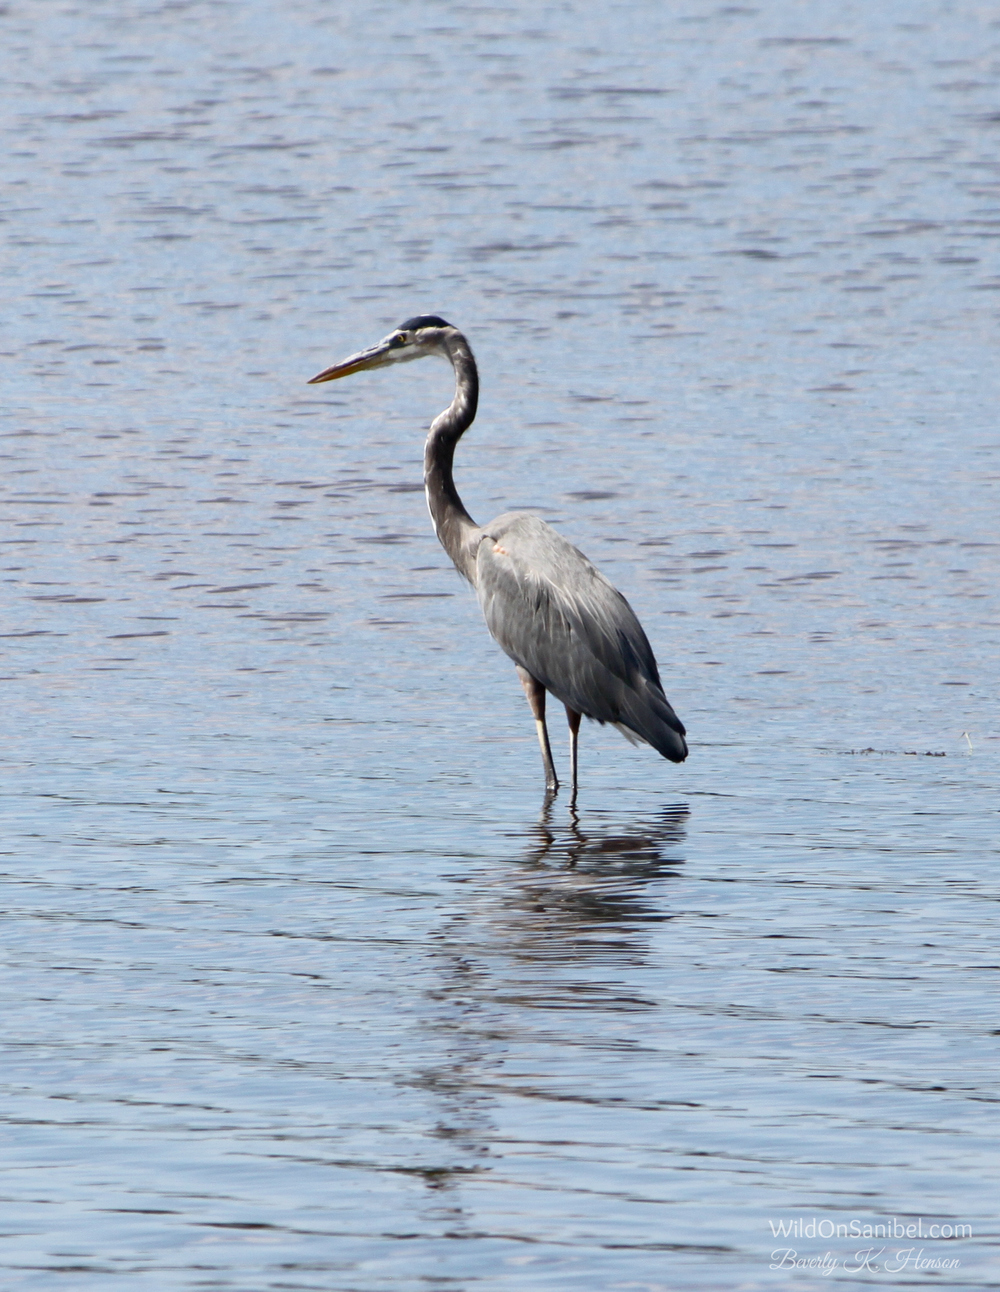 Another Great Blue Heron!